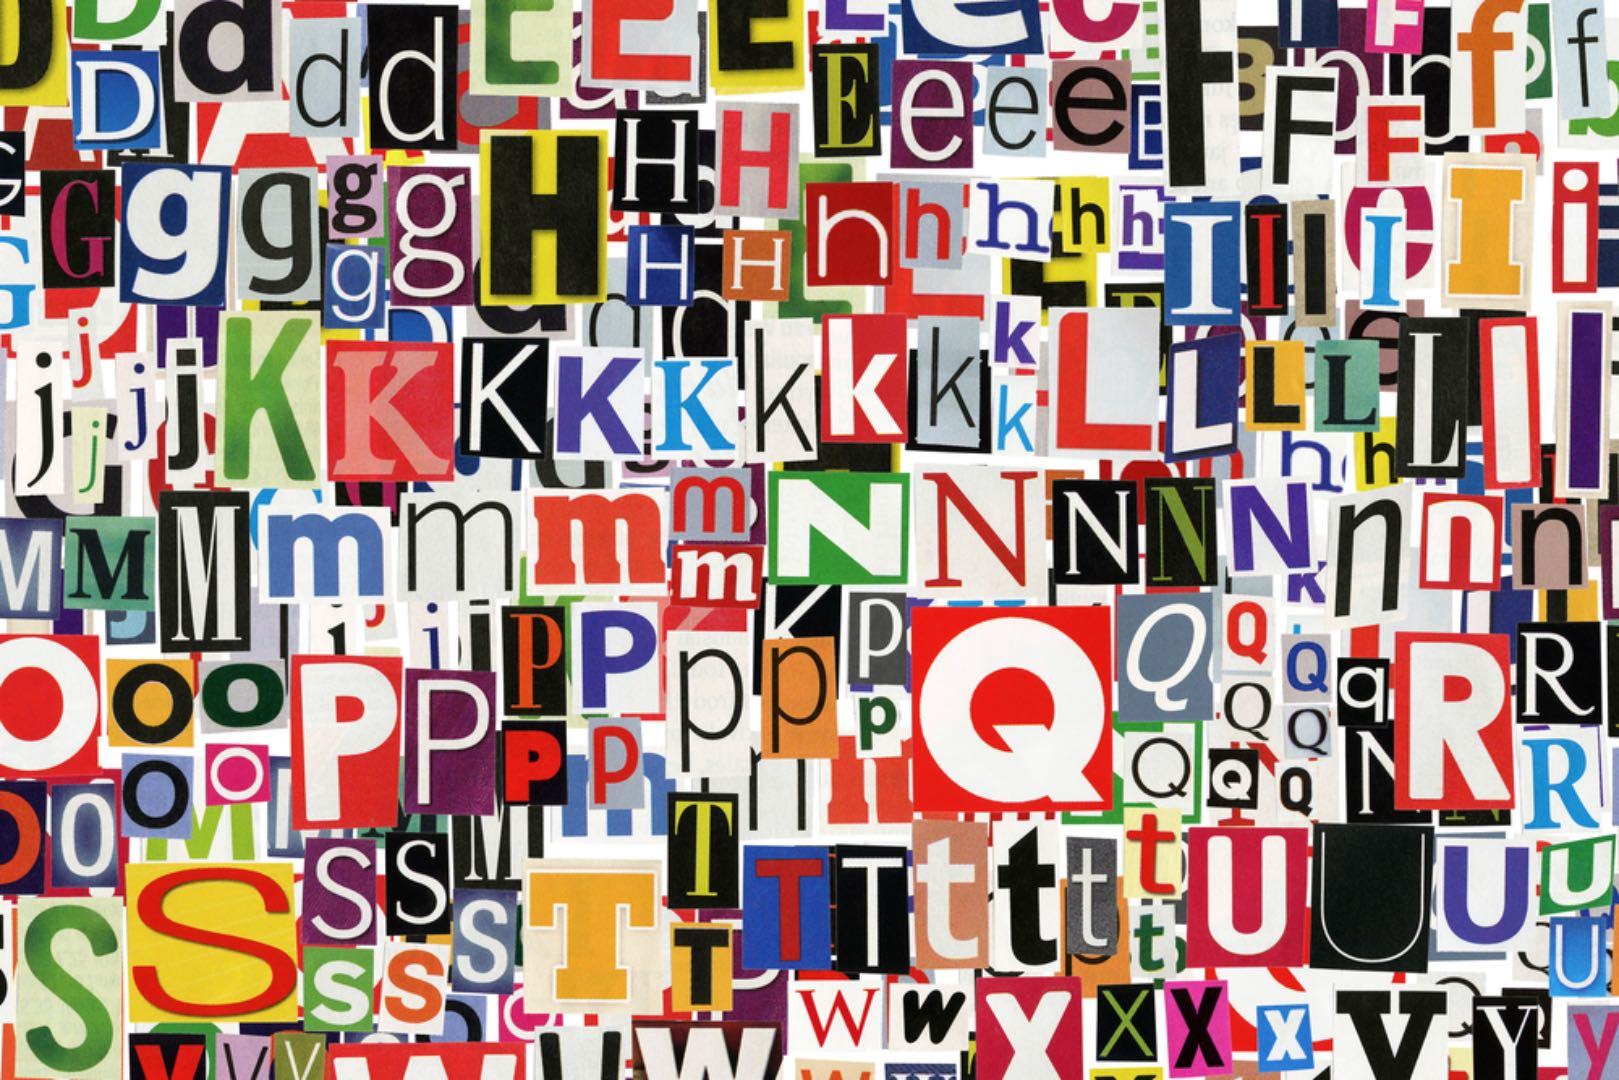 kill all abstract terms in your content marketing efforts